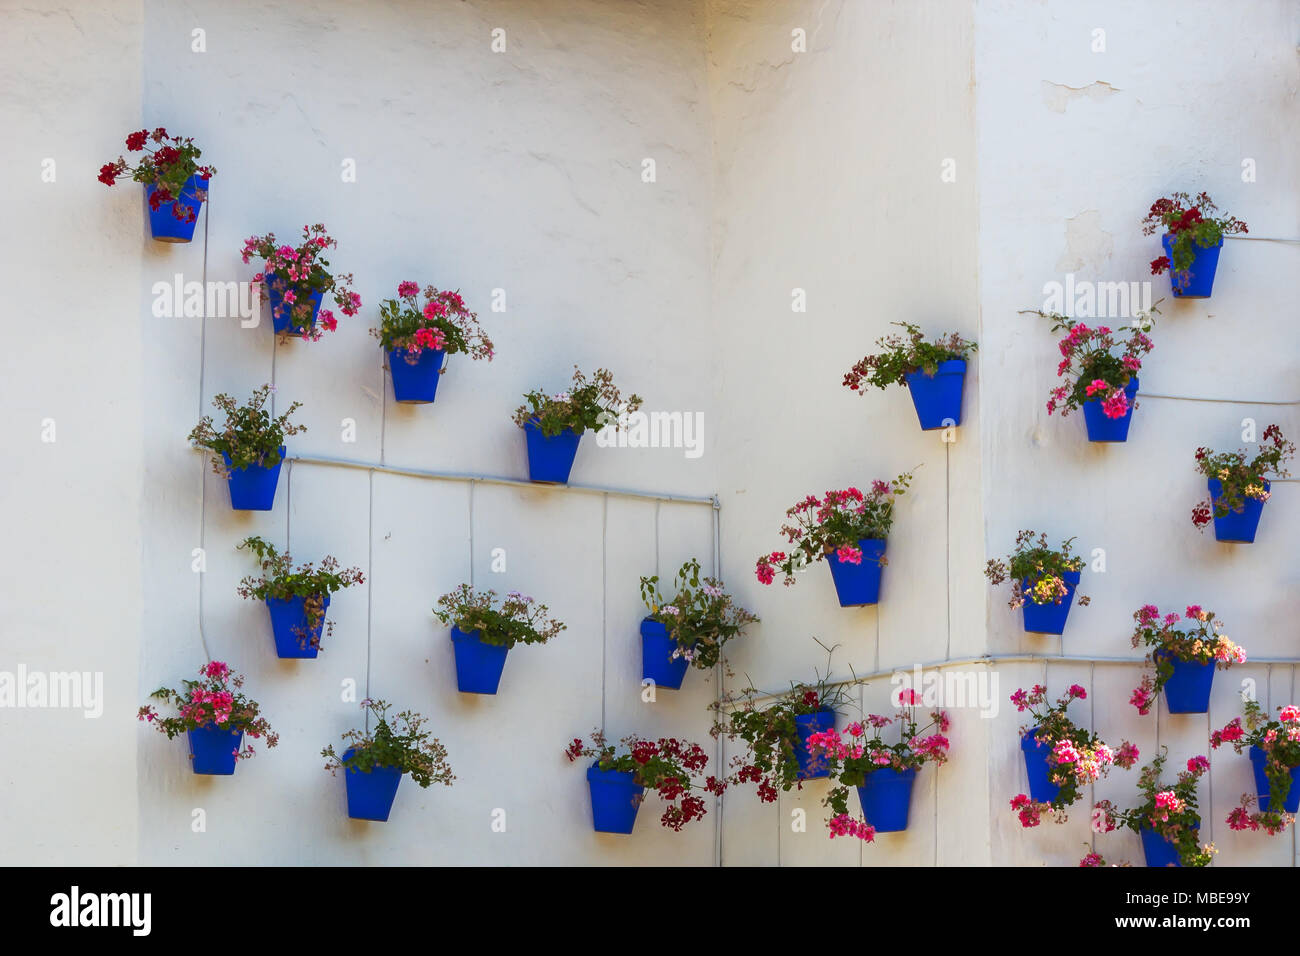 Traditional spanish flower pots on white wall - Stock Image & Spanish Flower Pots Stock Photos \u0026 Spanish Flower Pots Stock Images ...